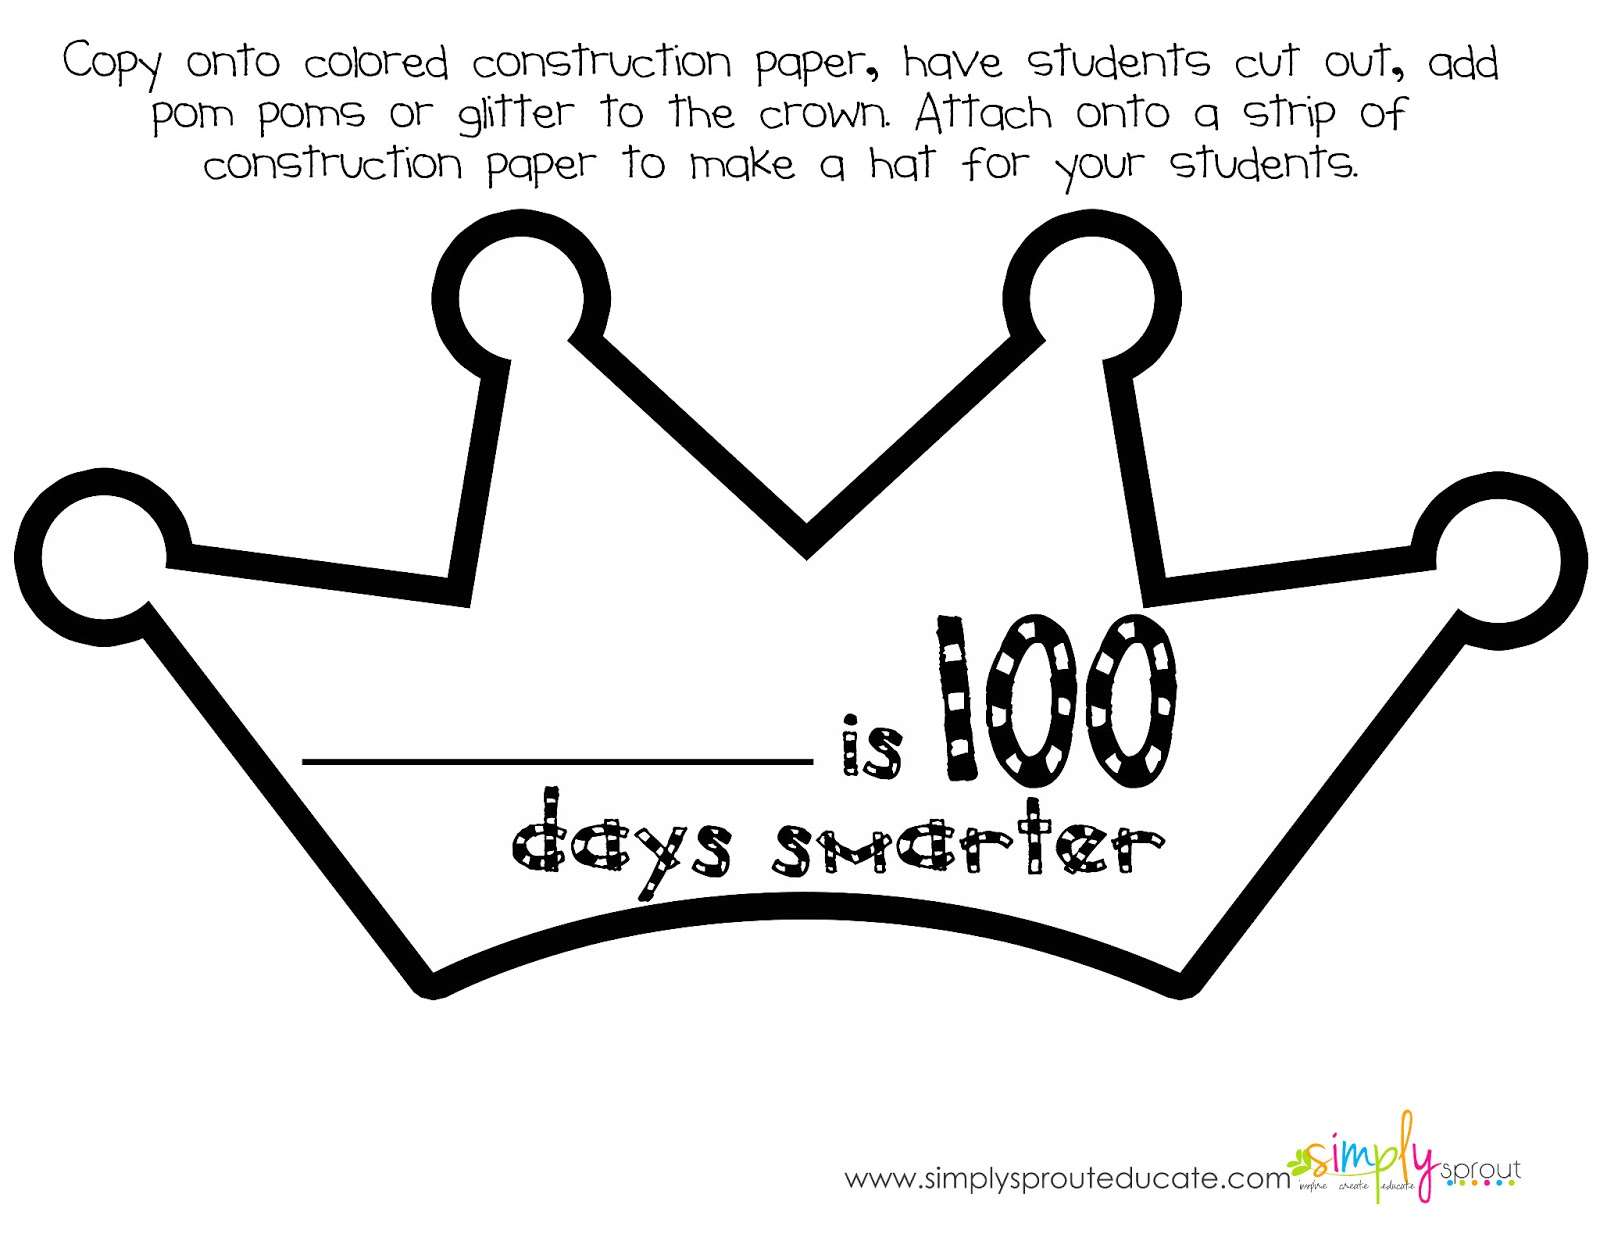 100th day of school coloring page photo - 1